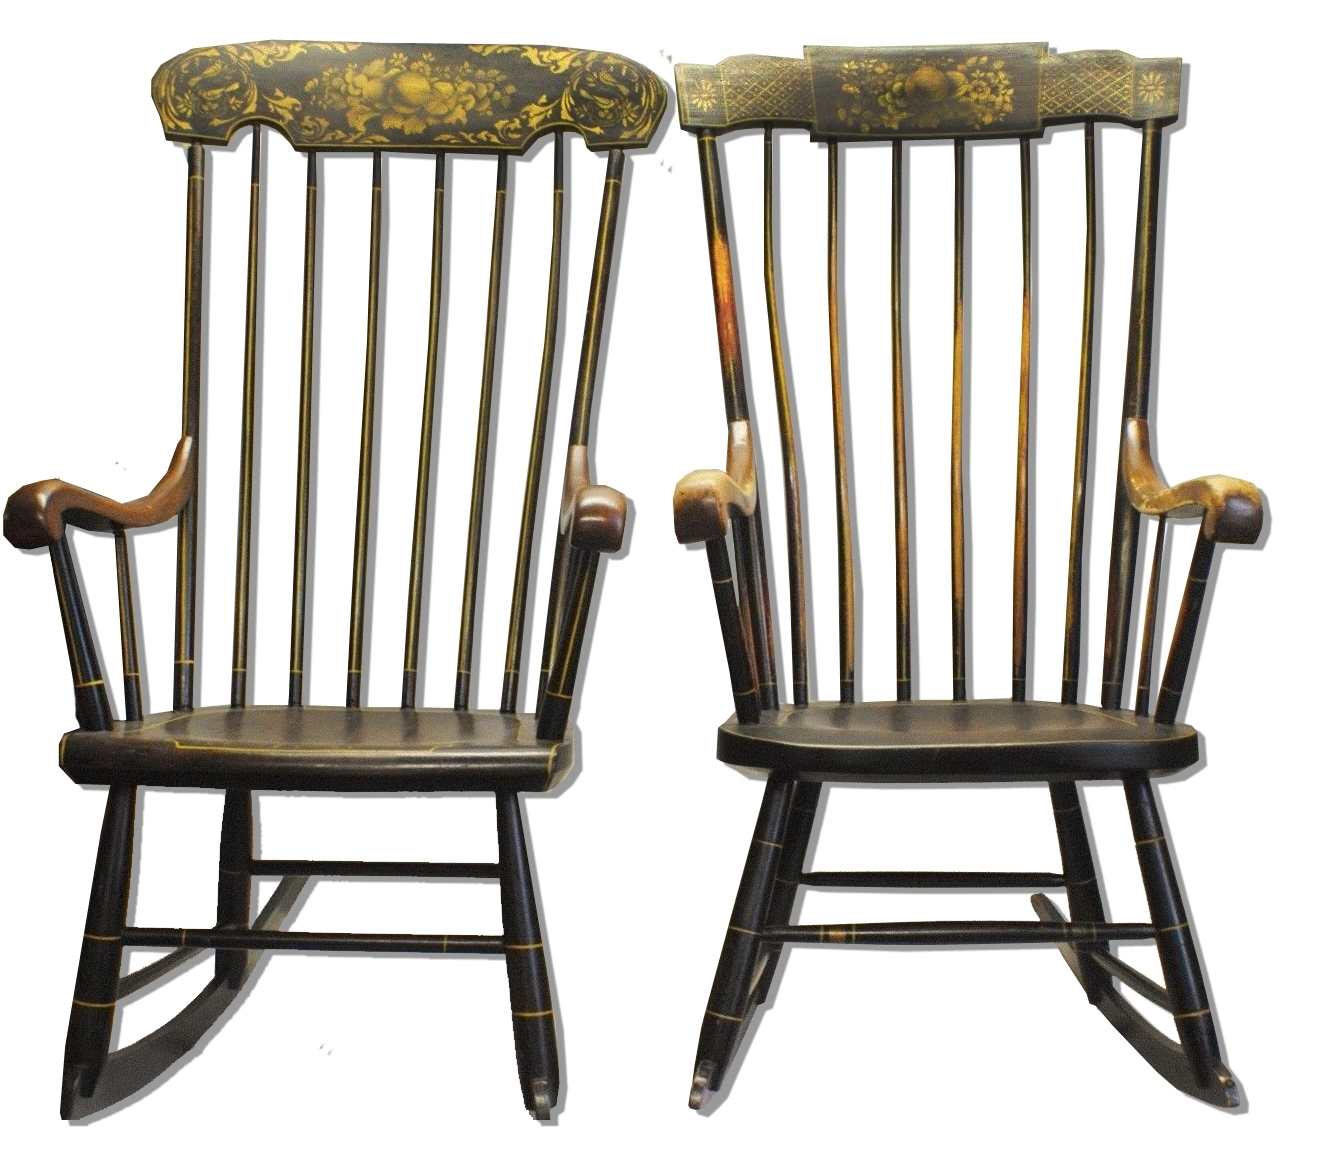 Antique Rocking Chairs Intended For Newest Lincoln's Rocking Chairs Sell For $26K – Antique Trader (View 7 of 20)